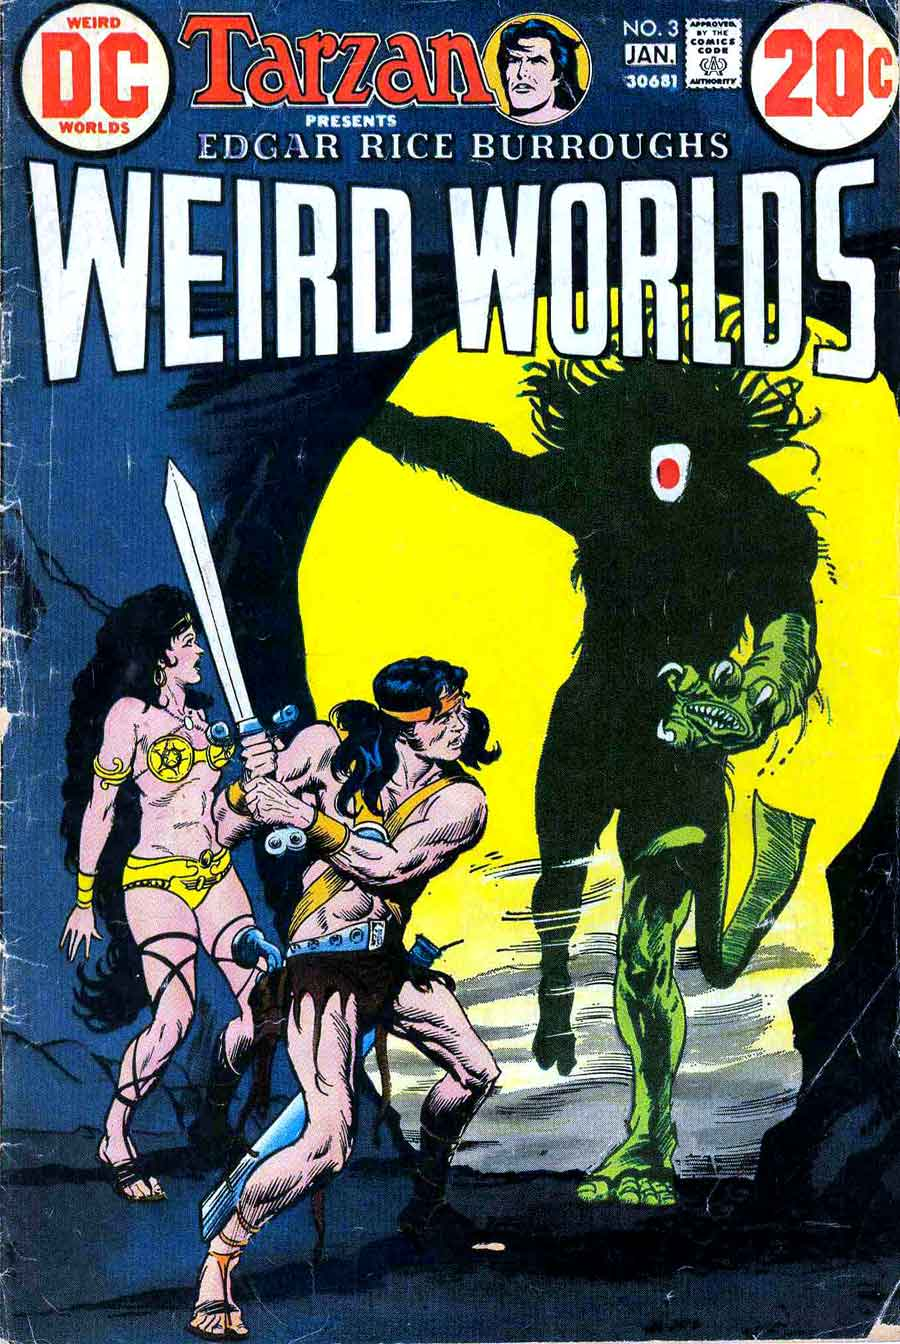 Weird Worlds #3 bronze age 1970s science fiction dc comic book cover